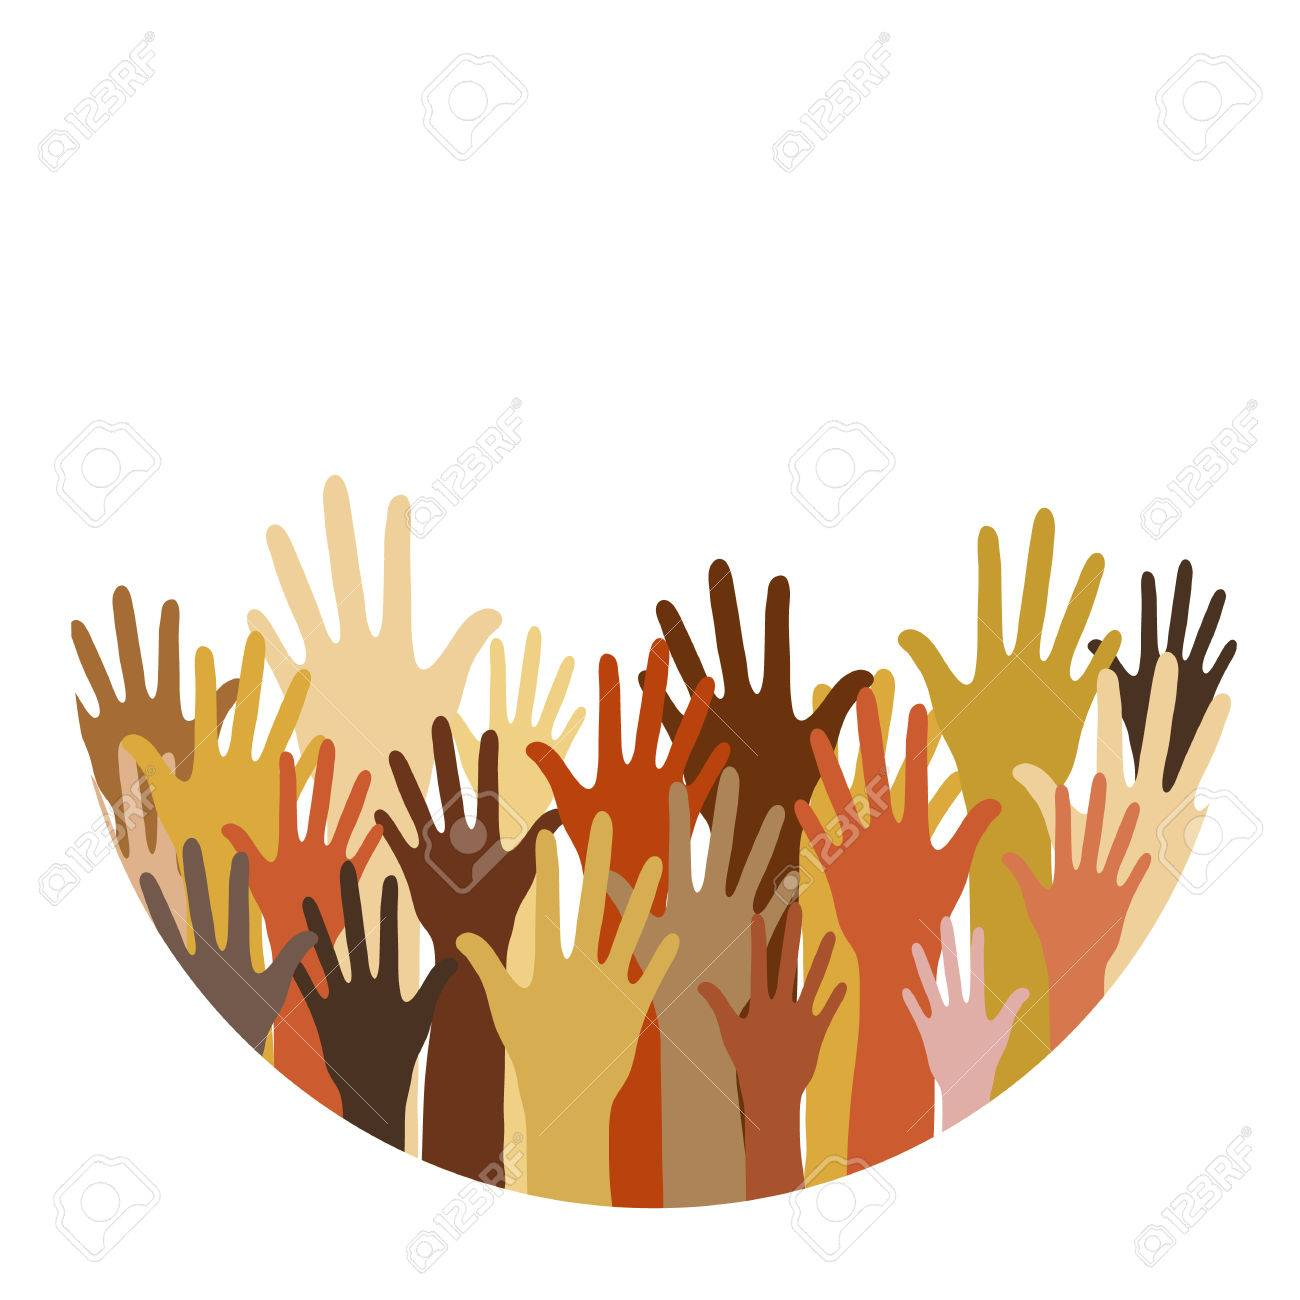 different race hands cultural and ethnic diversity concept rh 123rf com